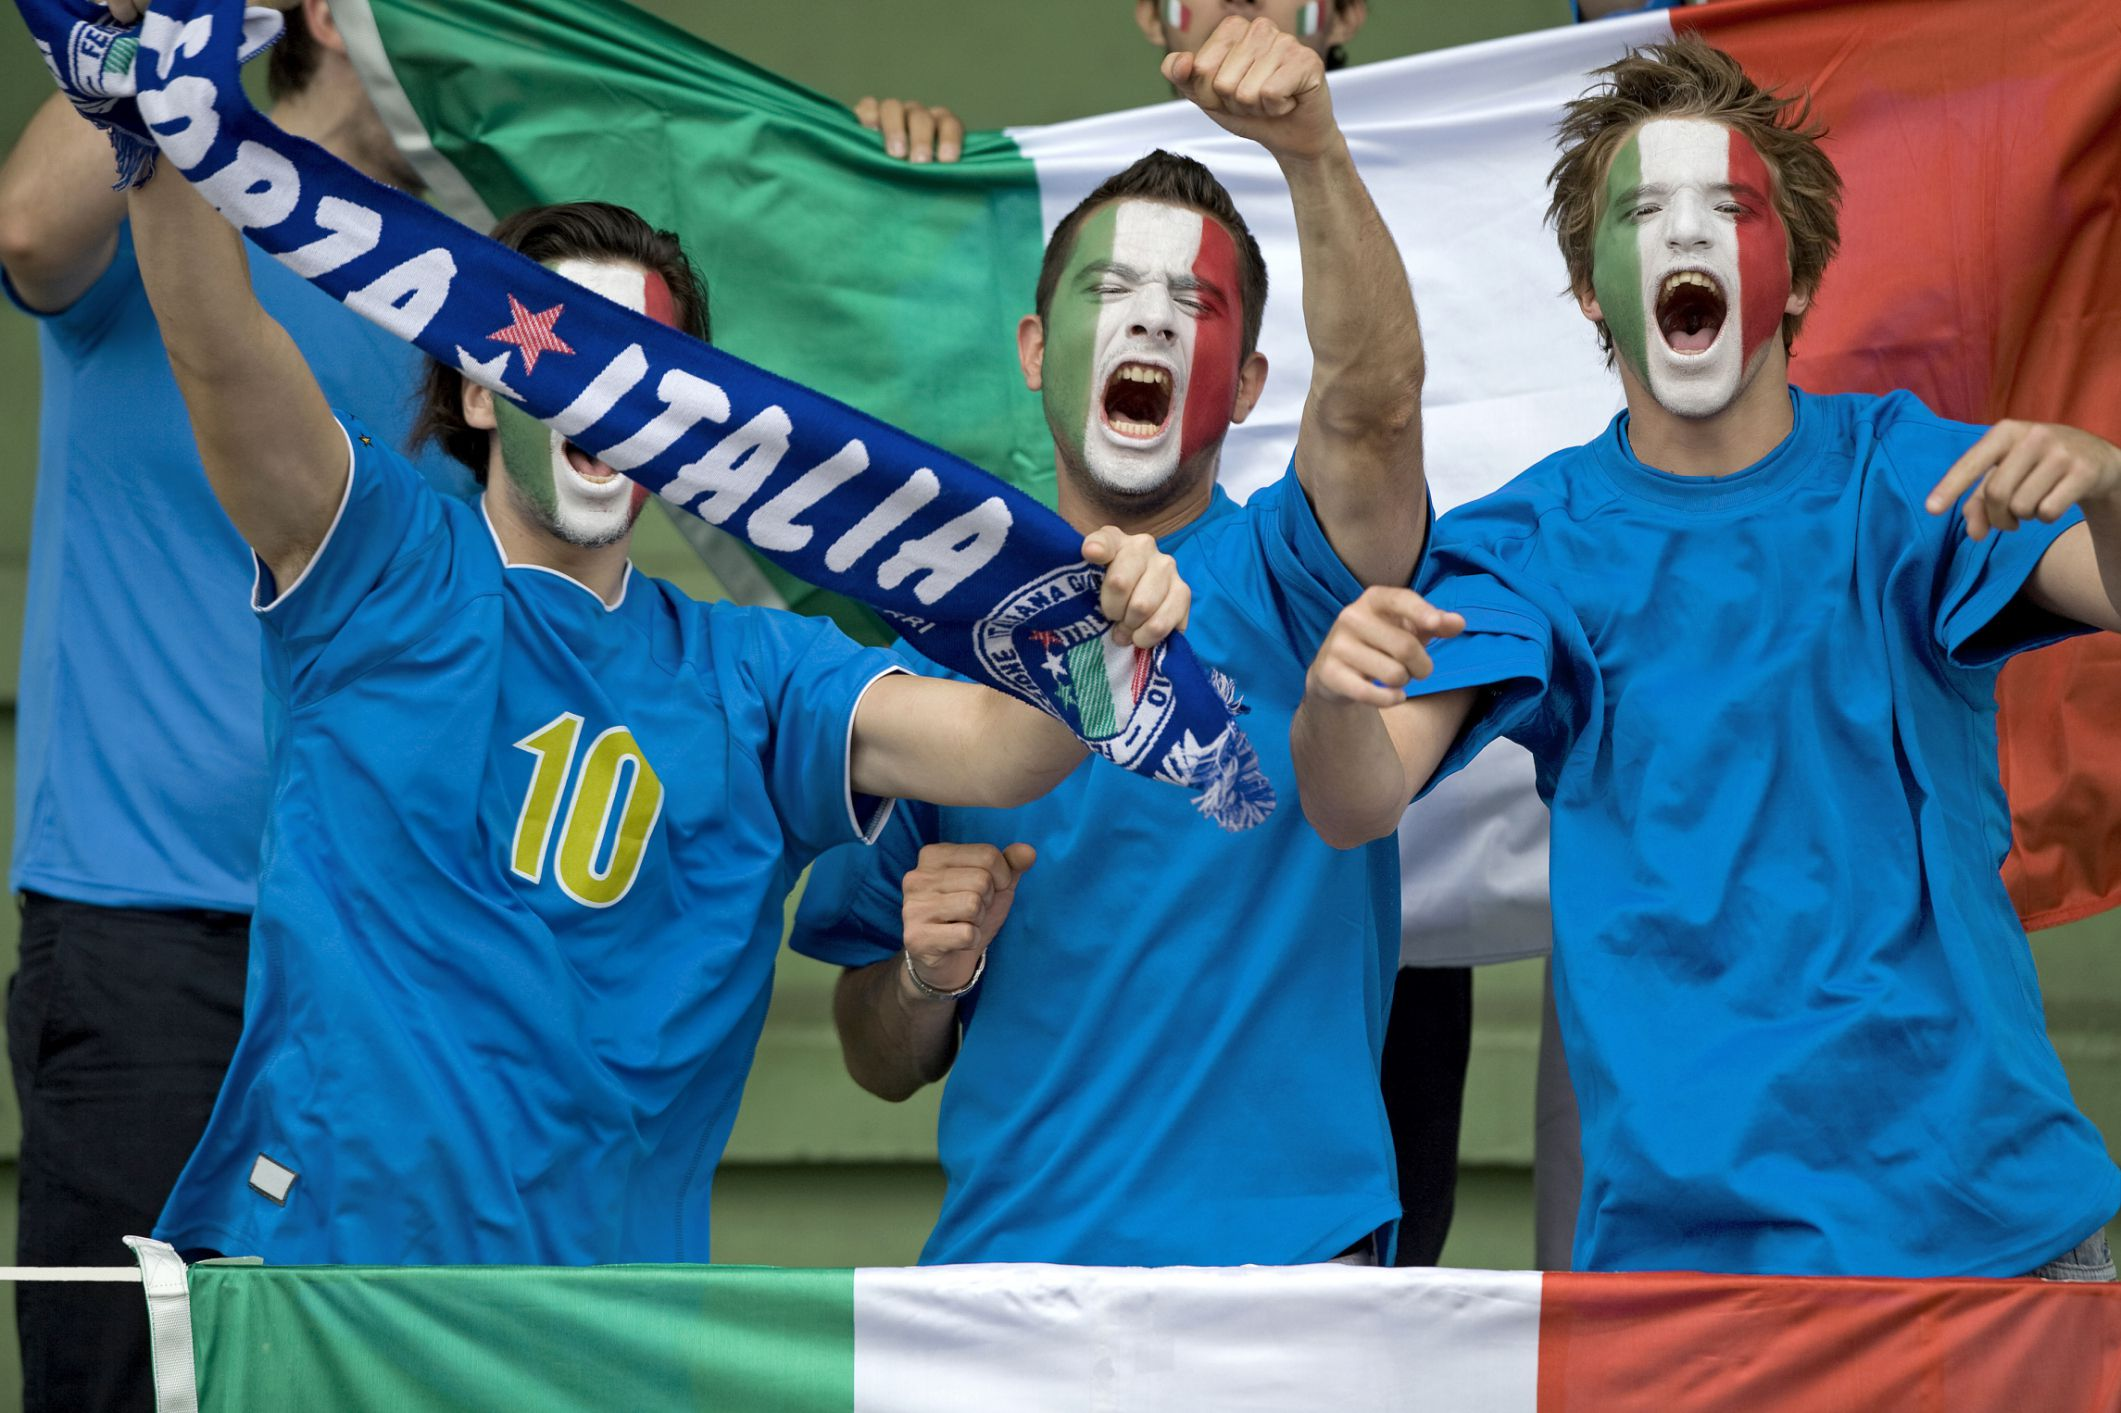 a history of soccer in italy